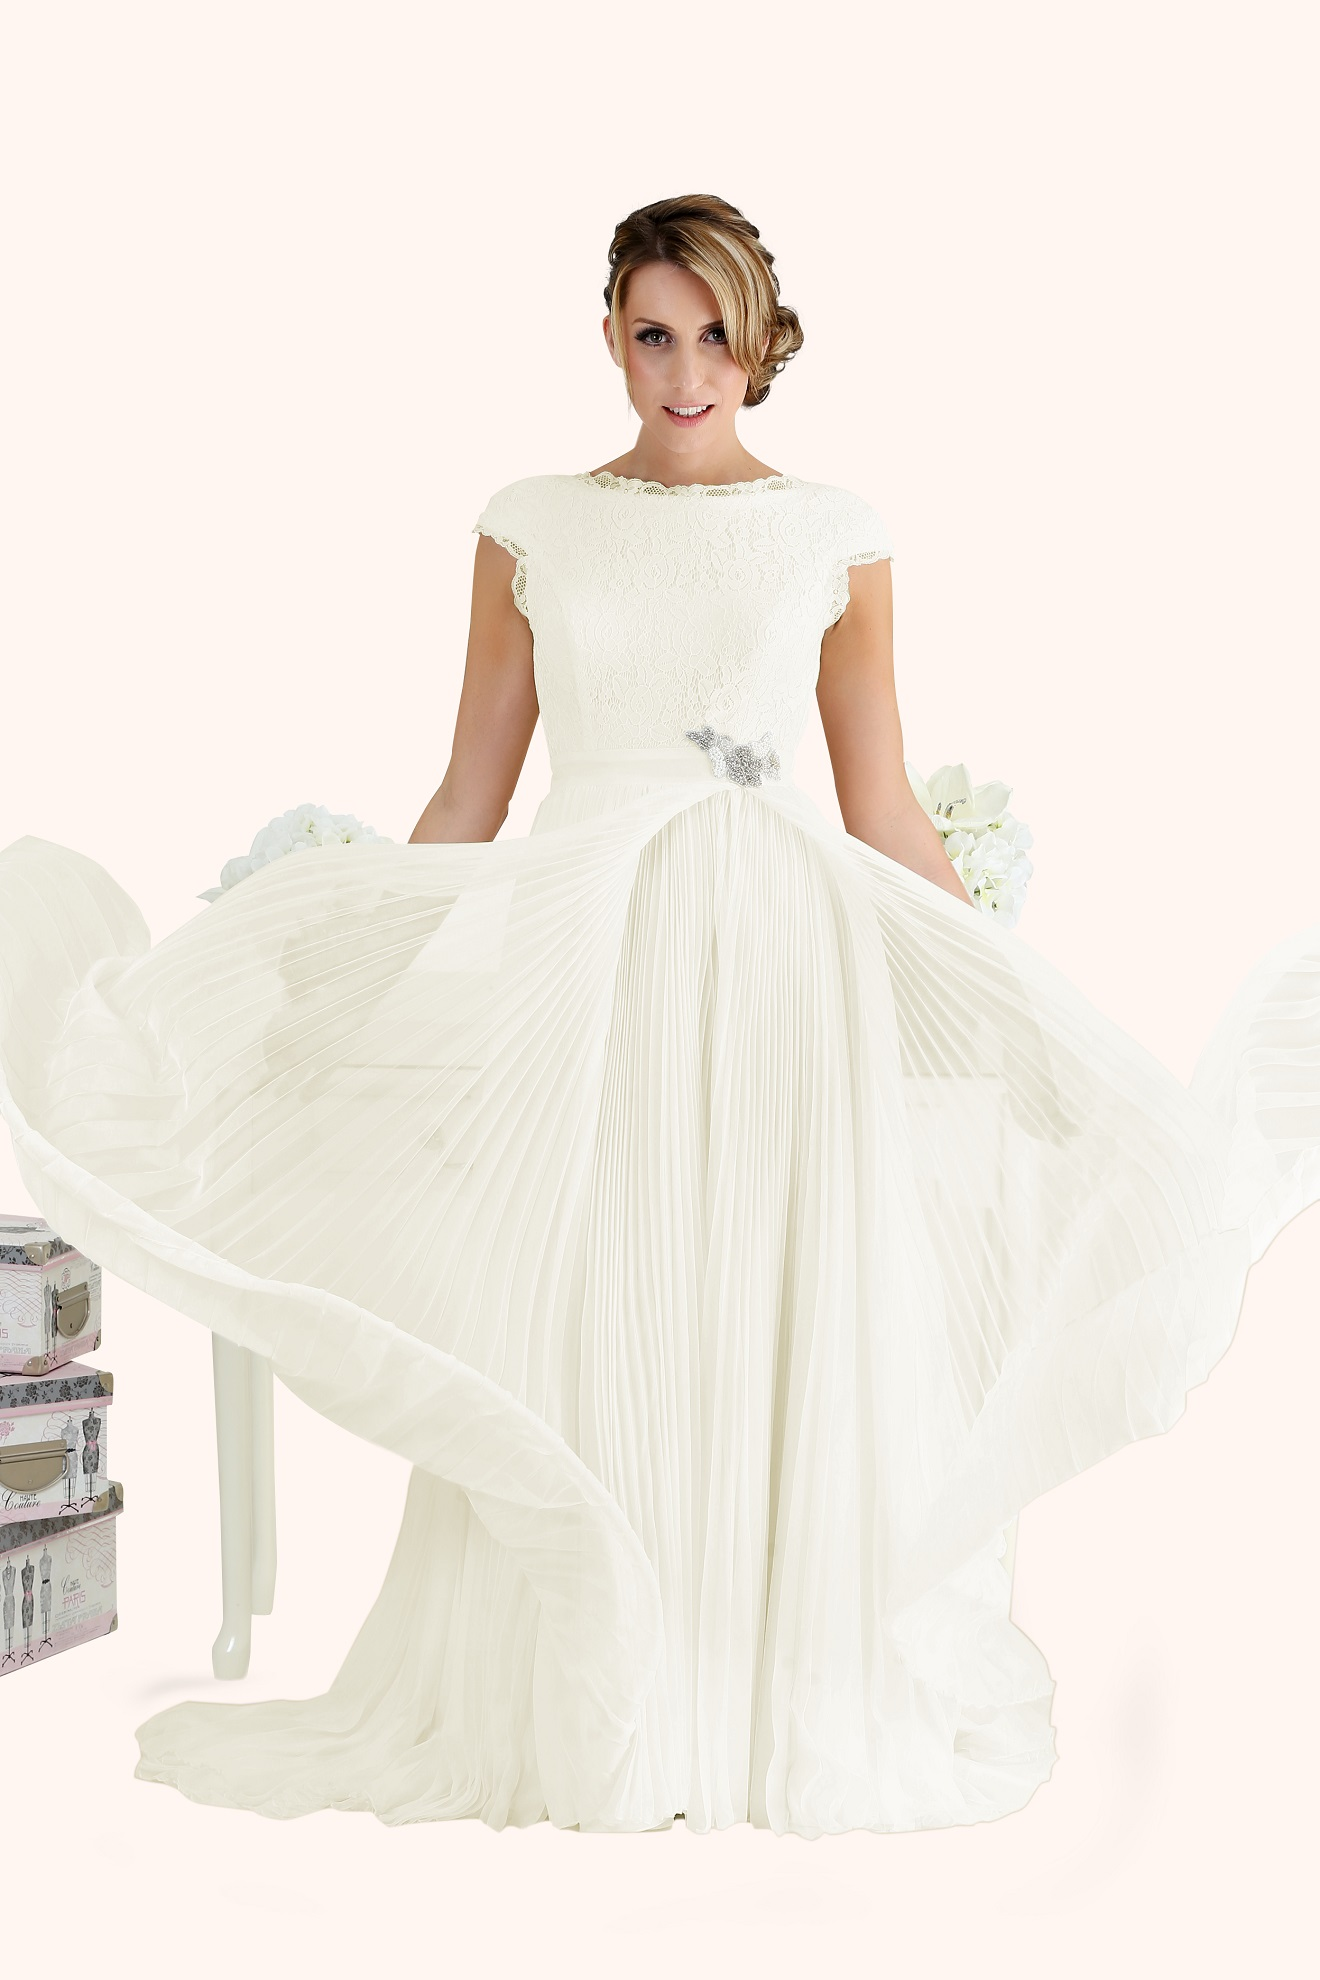 Wedding Dresses Sale Uk - Wedding Dresses In Jax